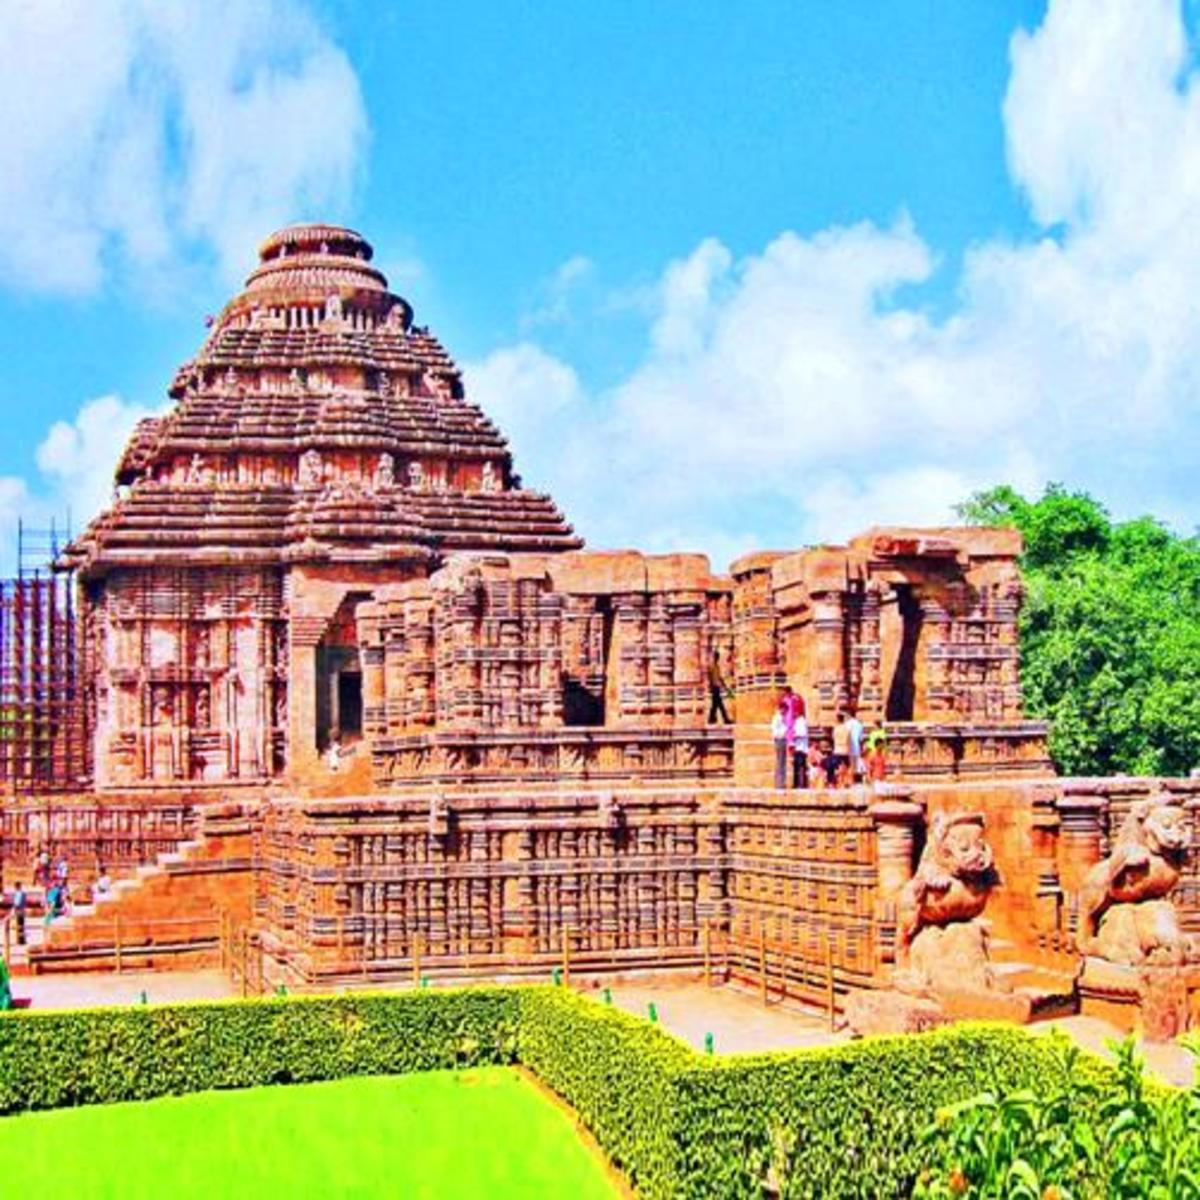 Konark Sun Temple - One of the greatest architectural marvels of ancient world